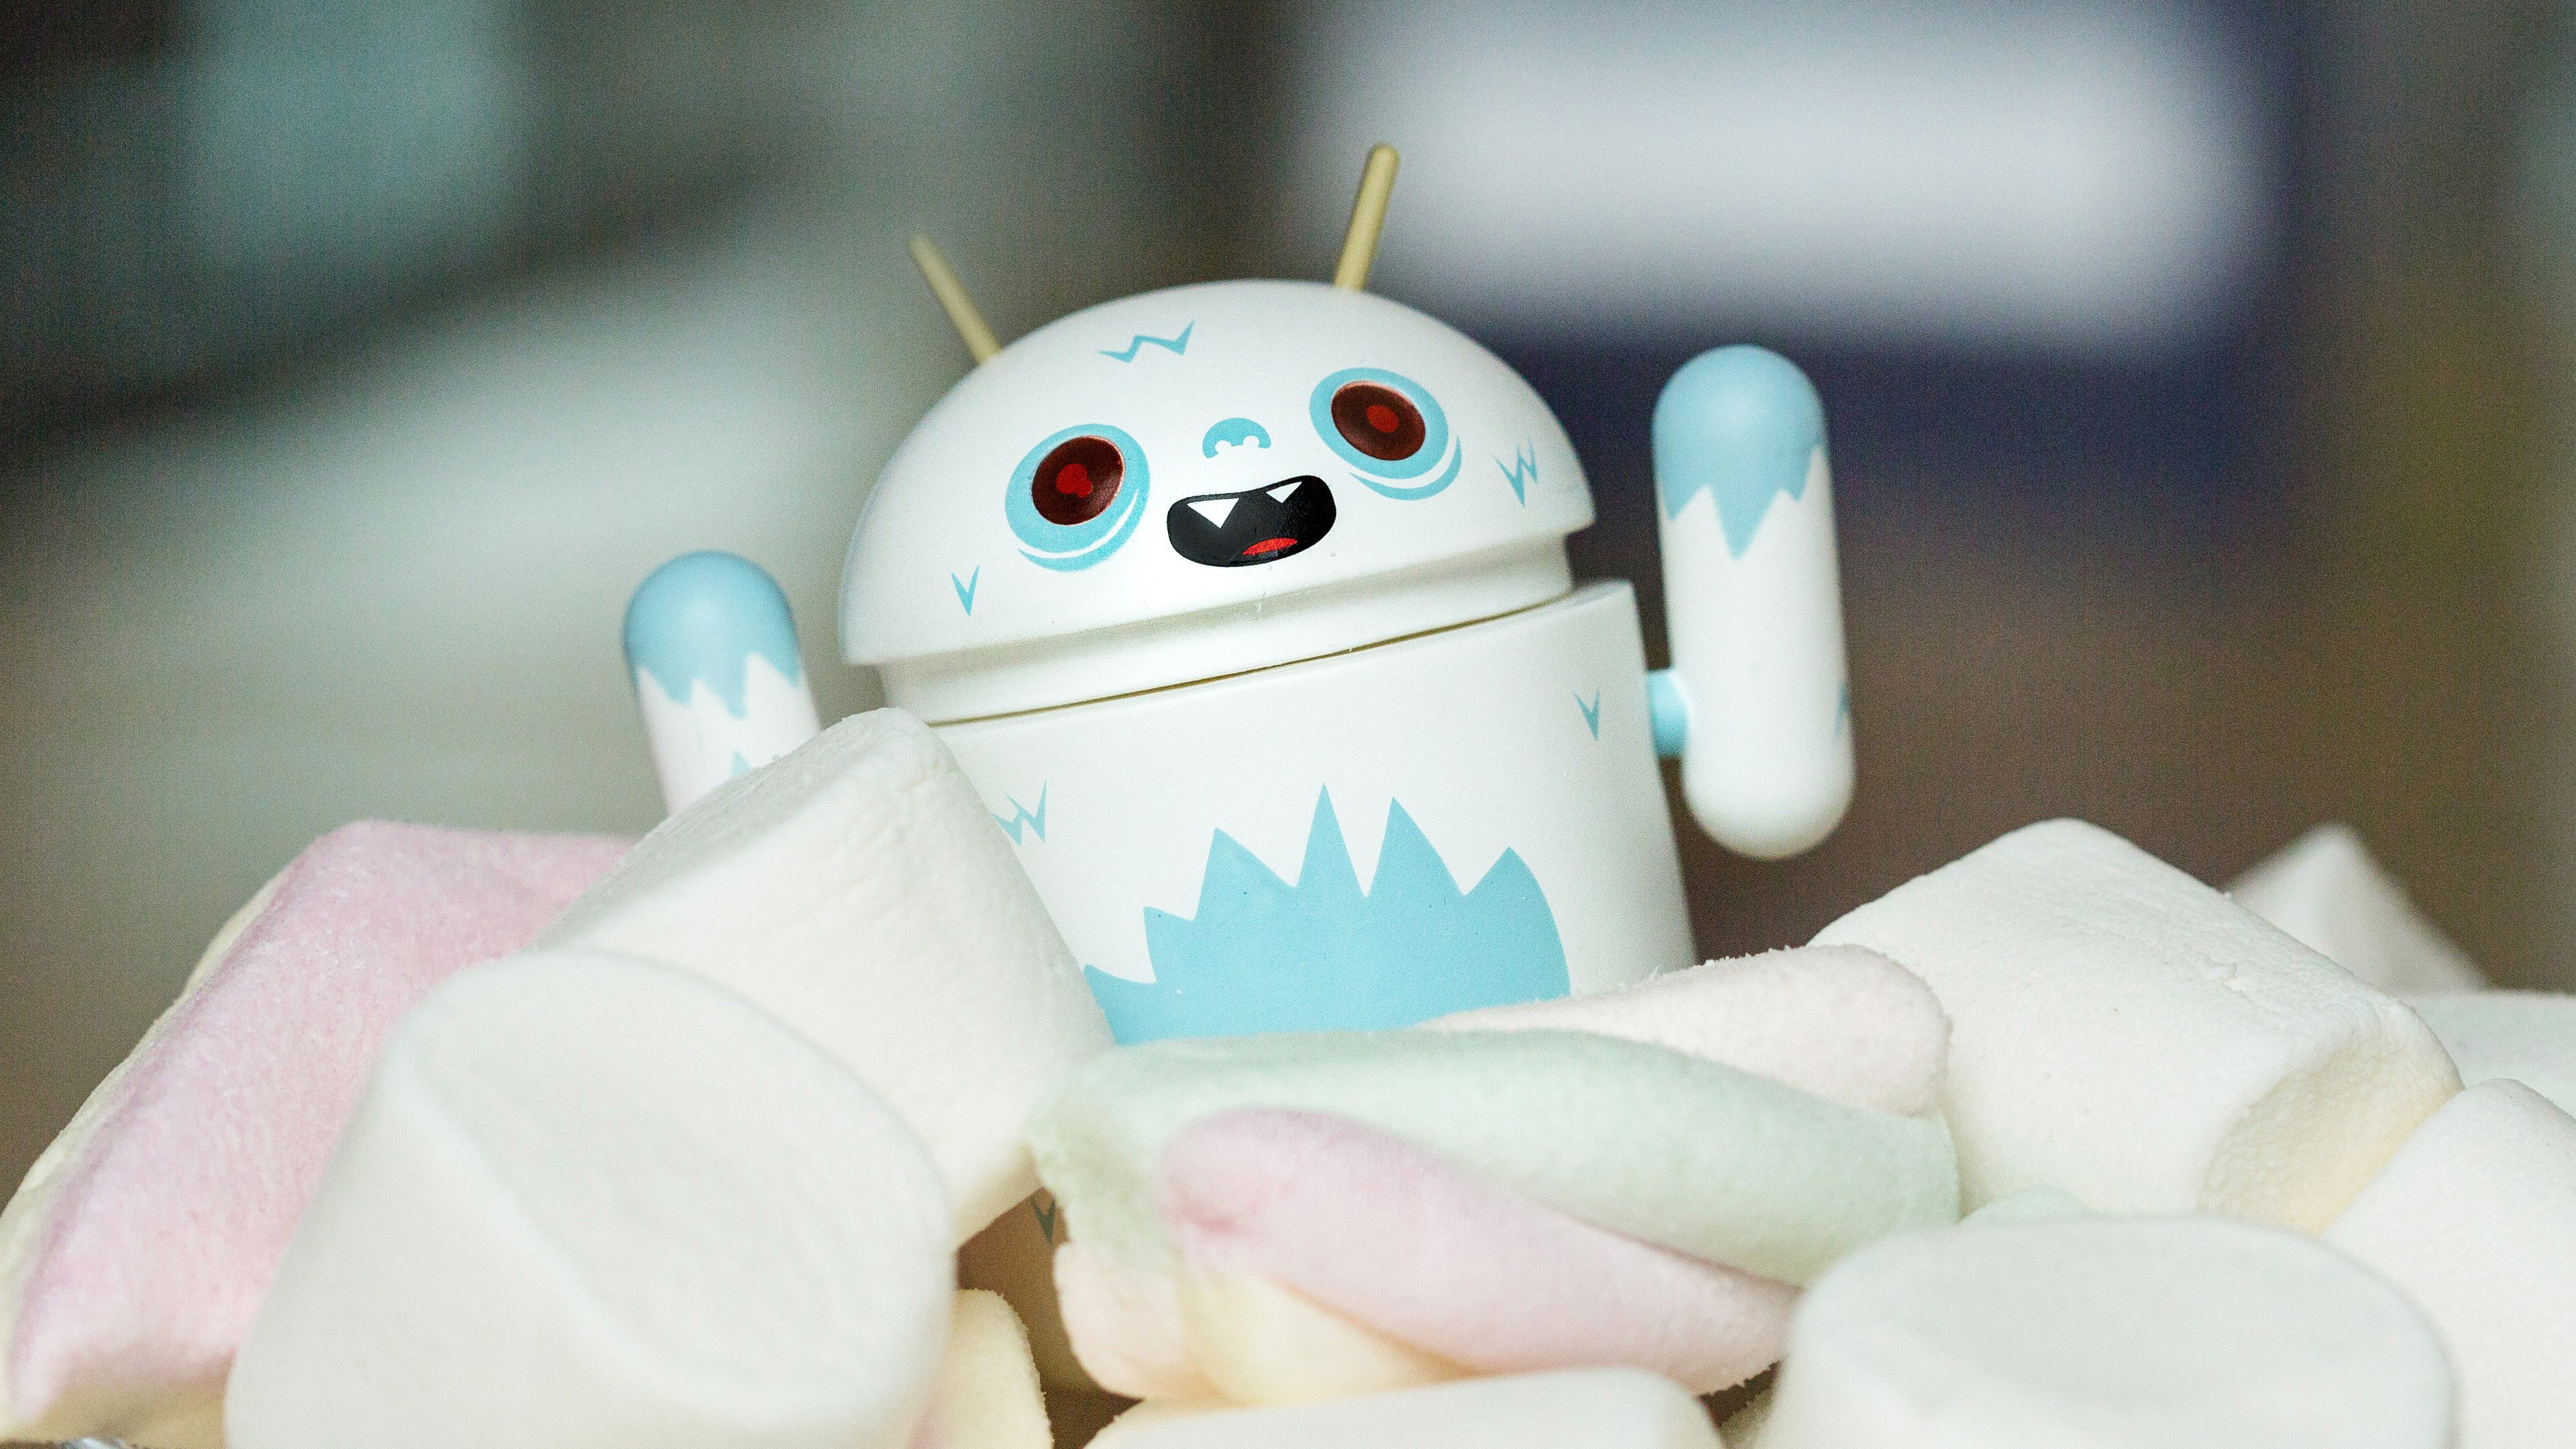 Res: 3840x2160, ... Attachment for 37 Cute Stuff Wallpapers - Android Marshmallow White  Robot in 4K